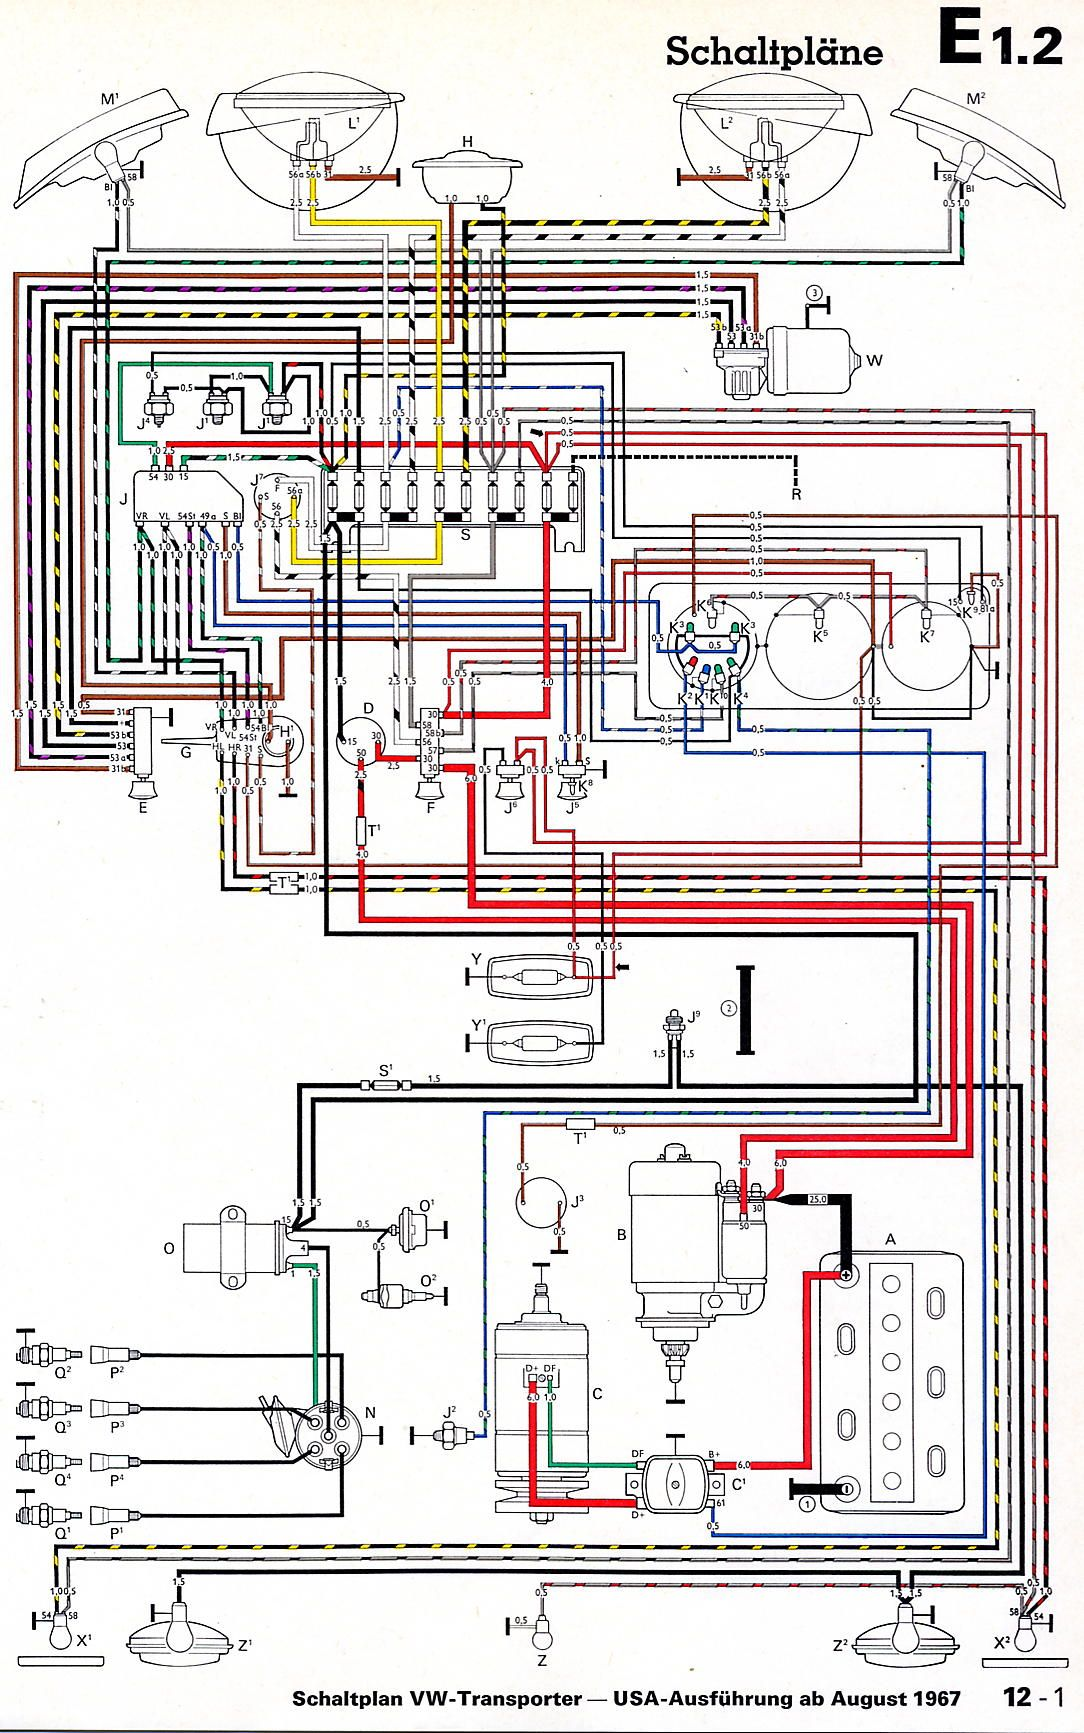 1968 vw bus wiring diagram [ 1084 x 1733 Pixel ]